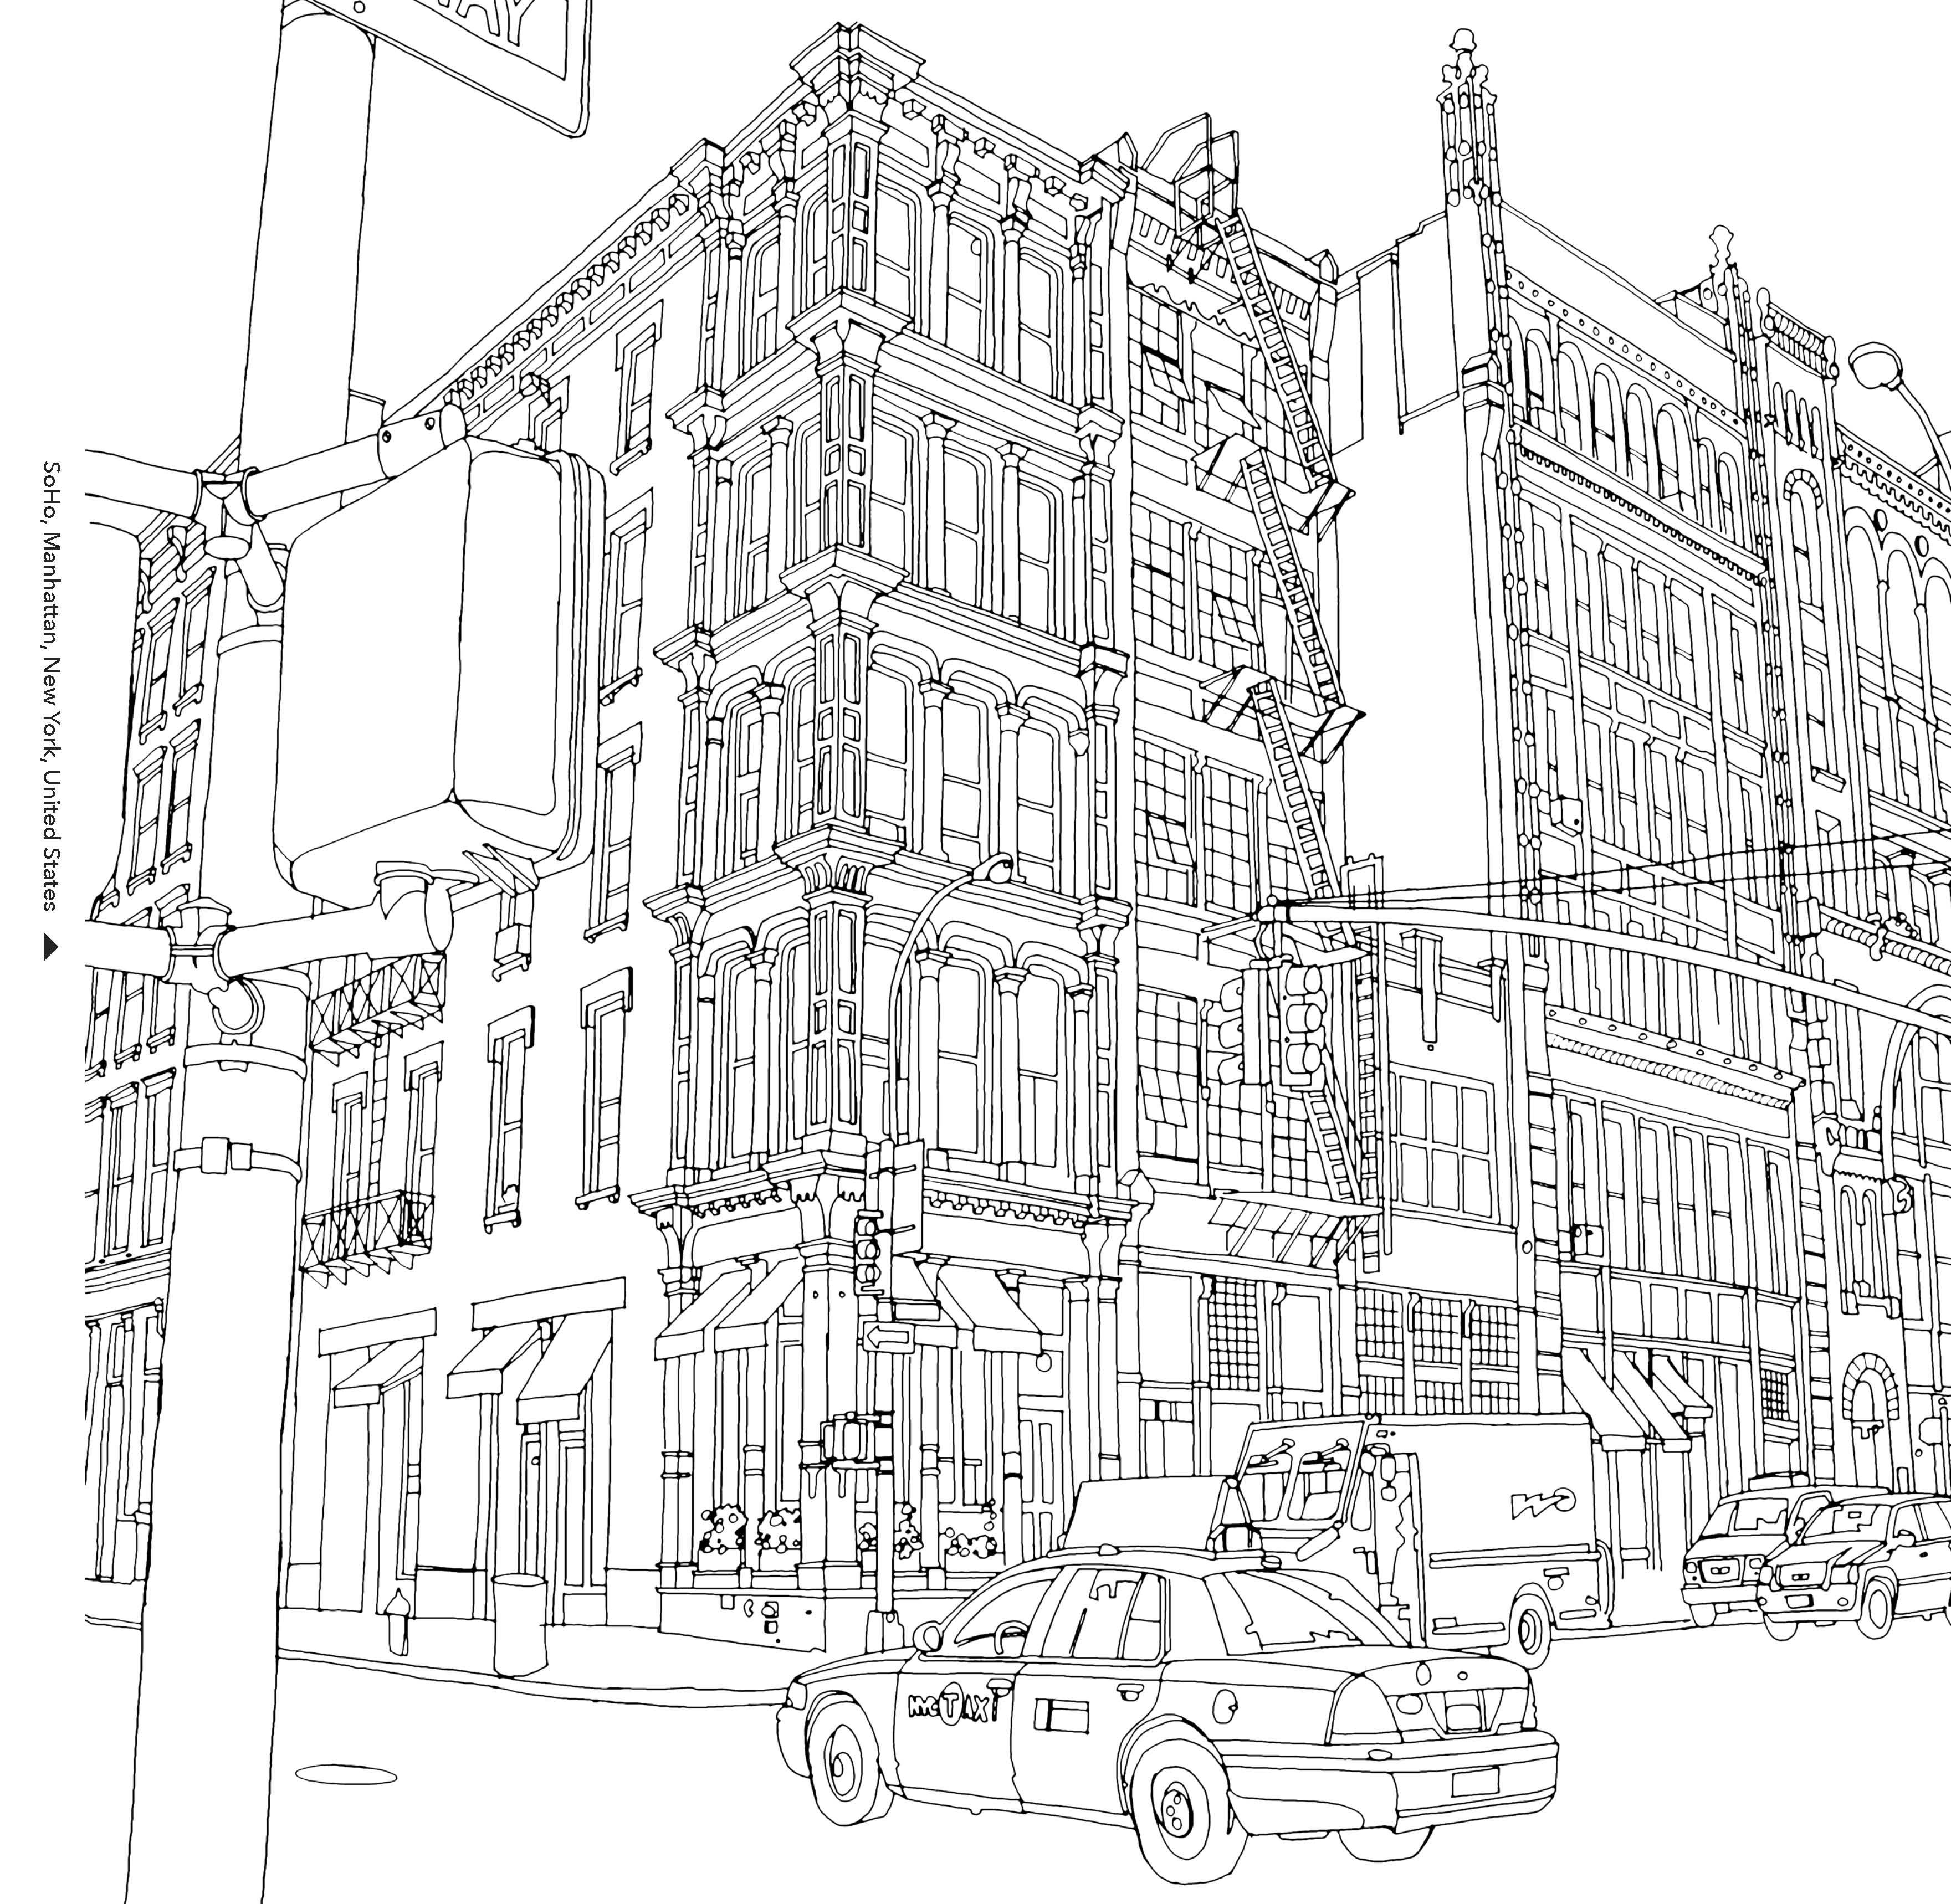 soho new york in fantastic cities image via chronicle books - New York City Coloring Pages